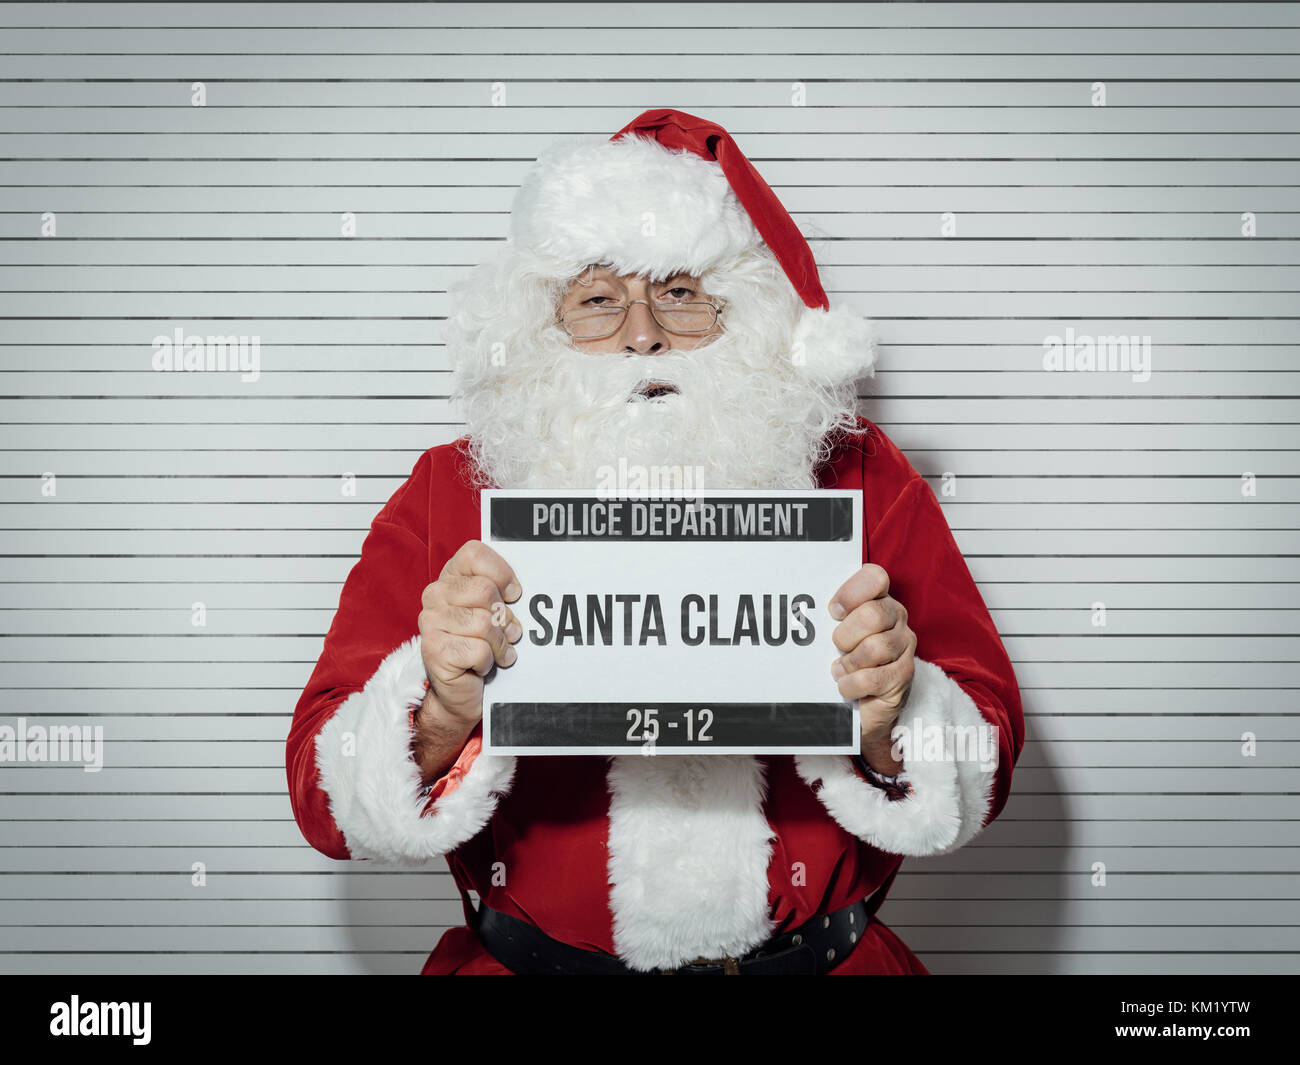 Santa Claus arrested on Christmas eve, he is posing for his mug shot at the police department and holding an identification - Stock Image